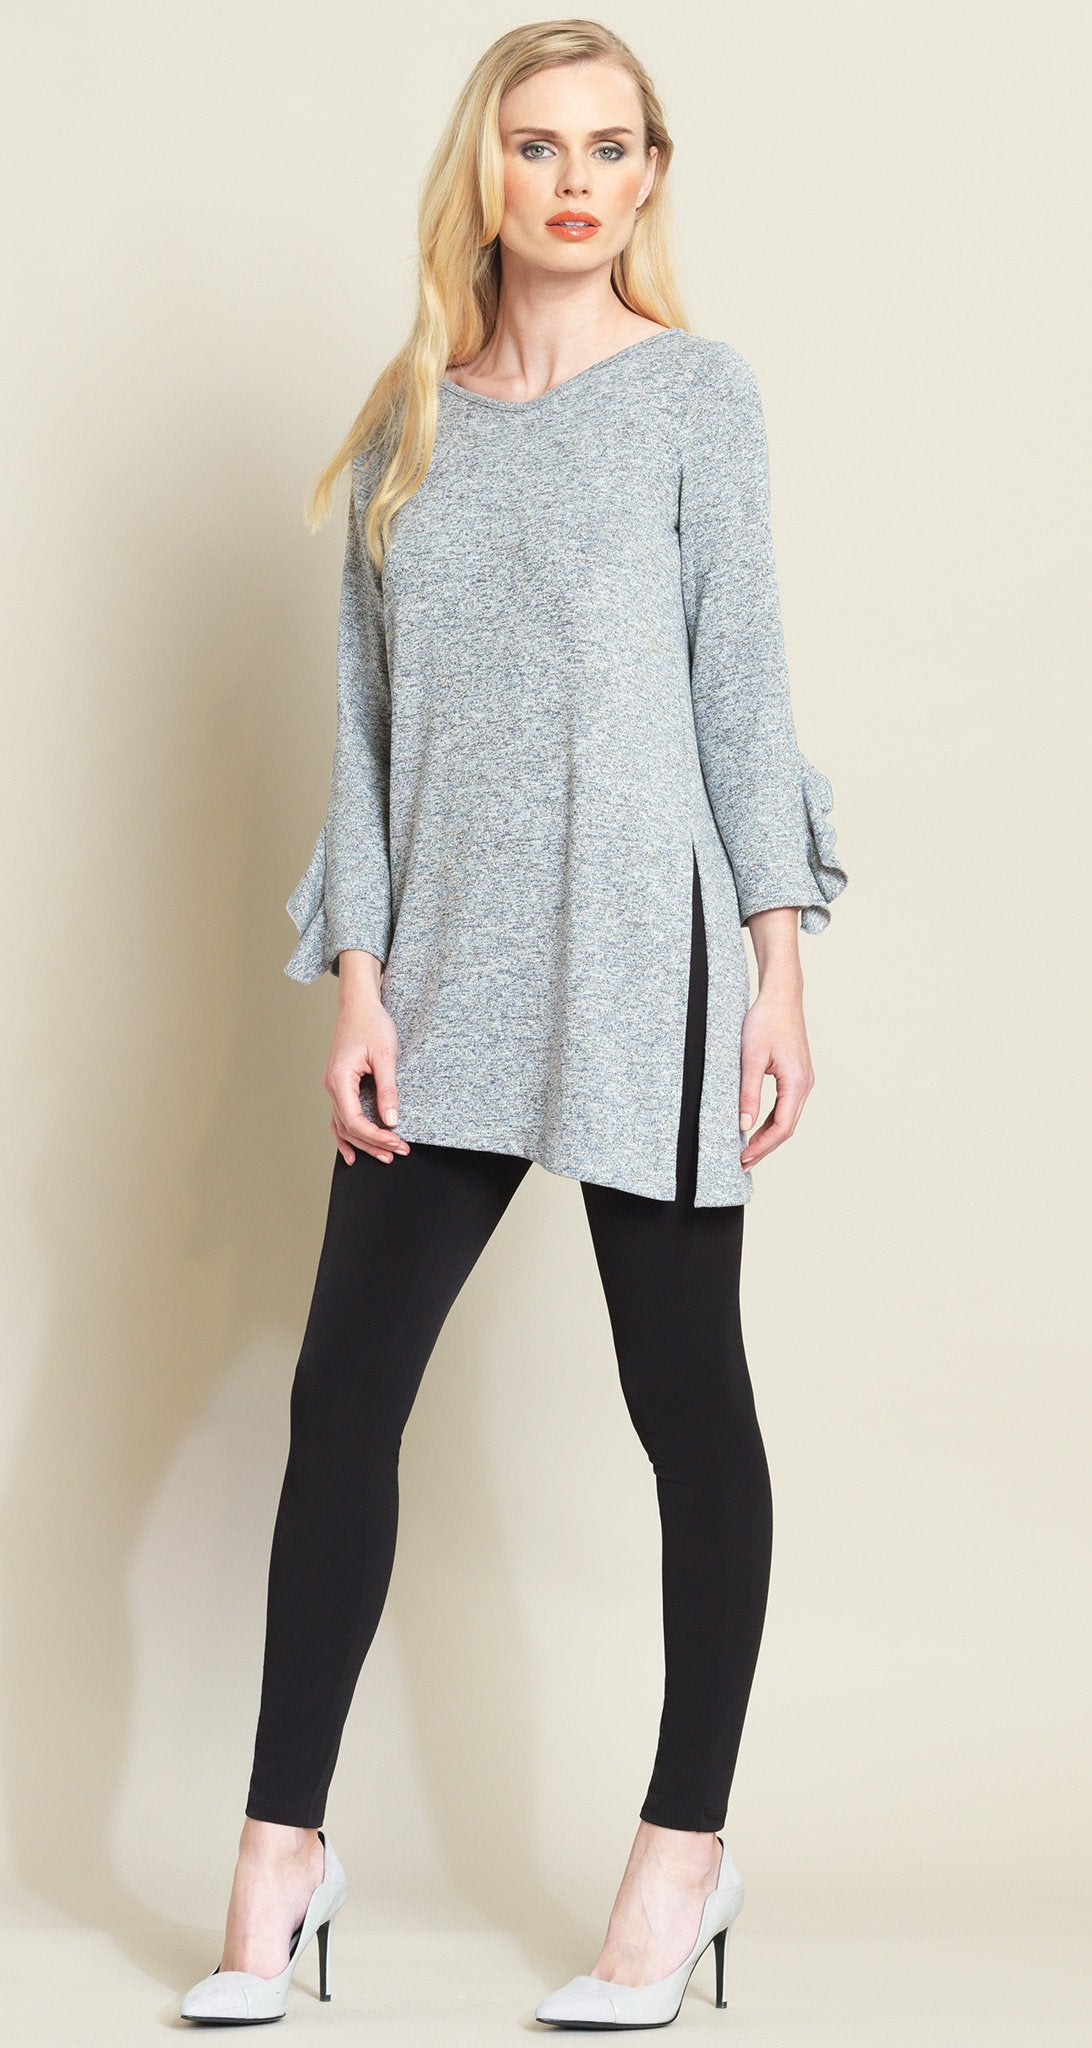 Ruffle Cuff Angle Hem Sweater Tunic - Grey - Final Sale!